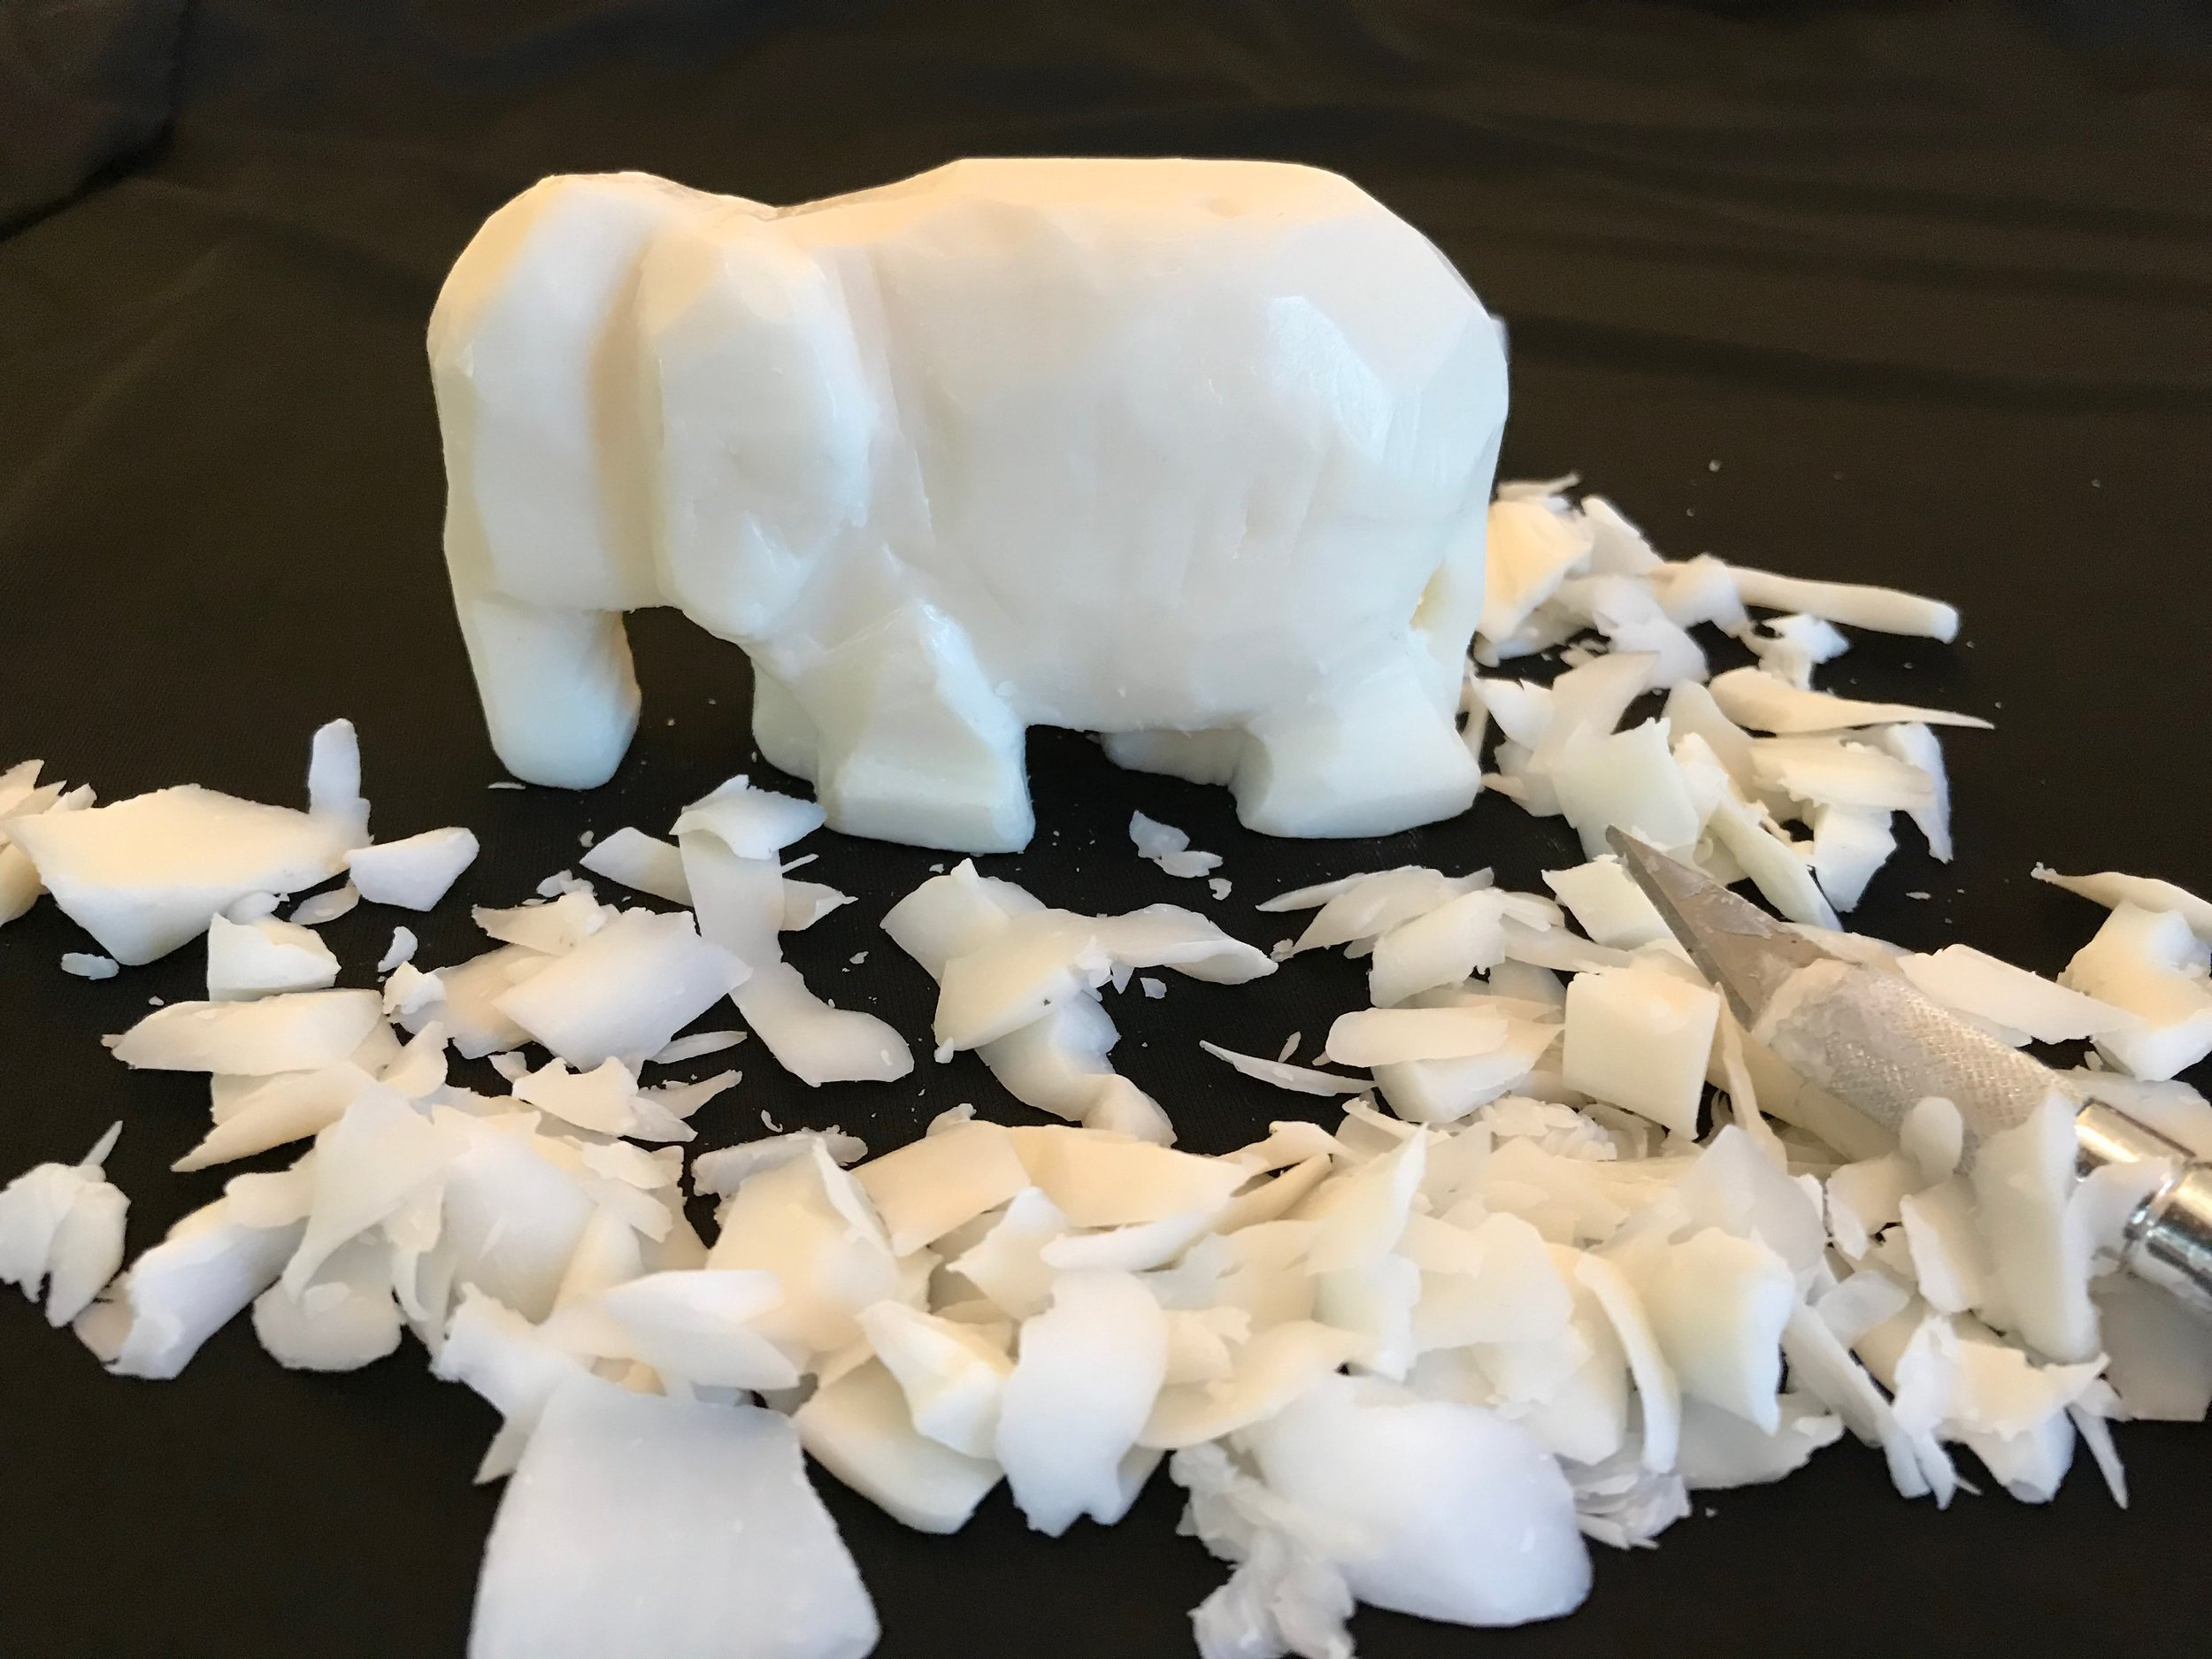 Day 341. I carved an Elephant out of Soap